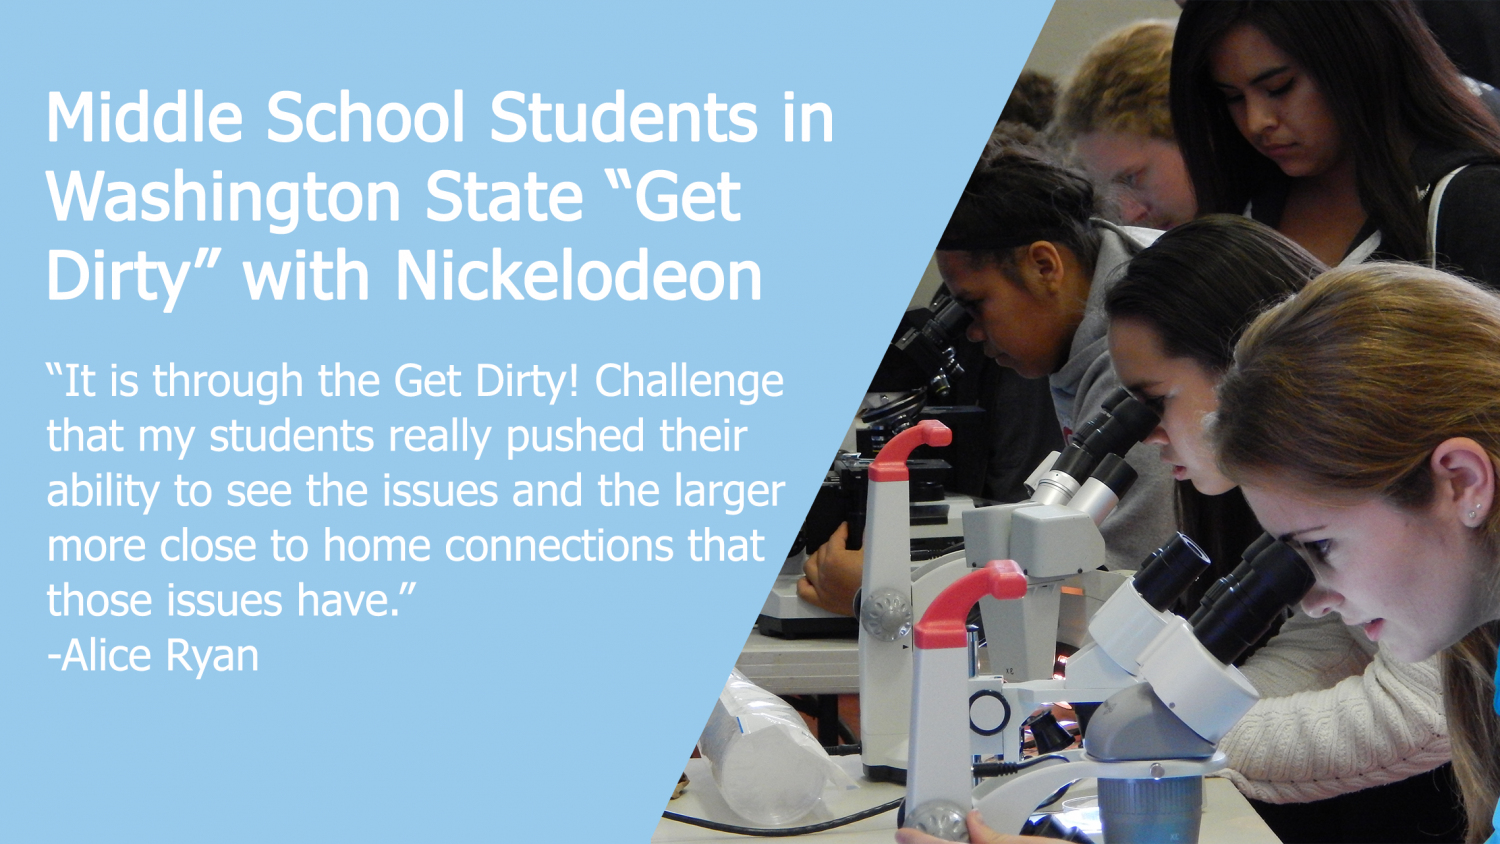 "Middle school students in Washington state ""Get Dirty"" with Nickelodeon: It is through the Get Dirty Challenge that my students really pushed their ability to see the issues and the larger more close to home connections that those issues have."" Alice Ryan"